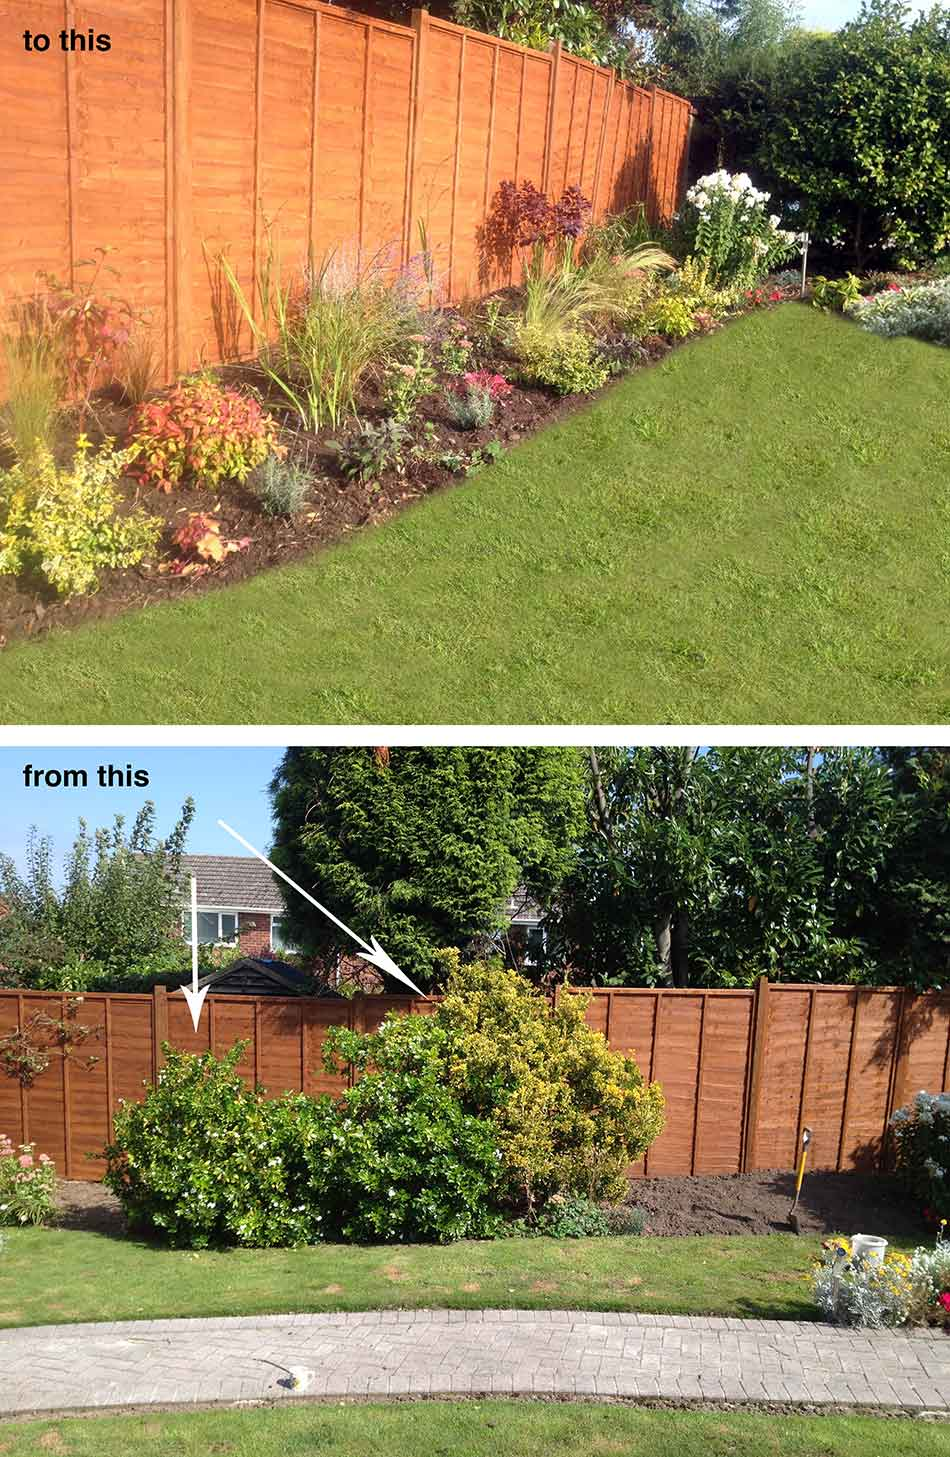 Garden Ideas And Design Blog Hornby Garden Designs: low maintenance garden border ideas